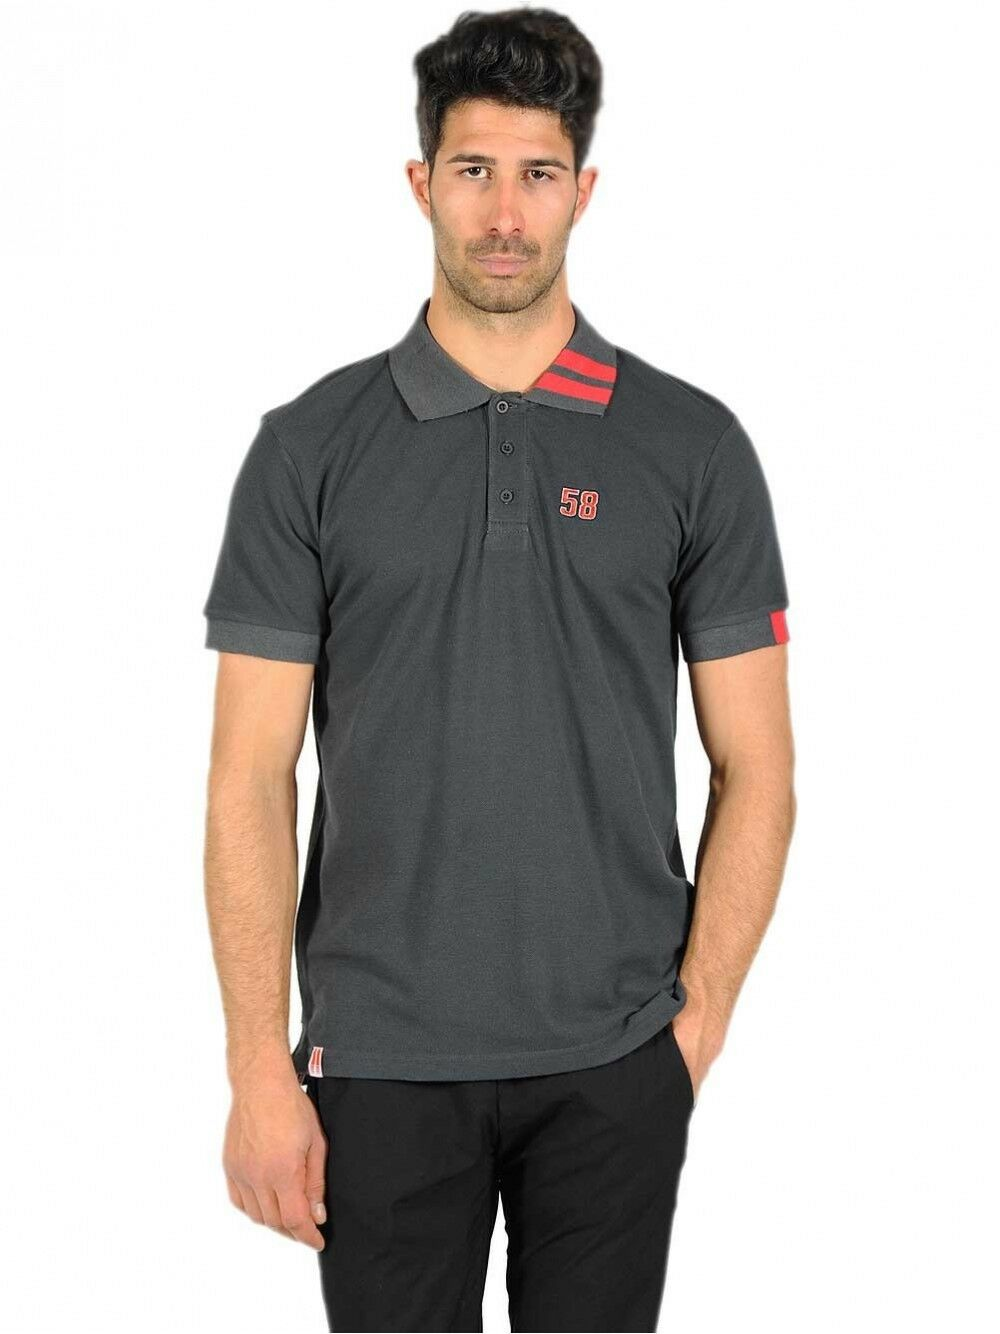 New Official SuperSic 58 Charcoal Polo.  16 15002